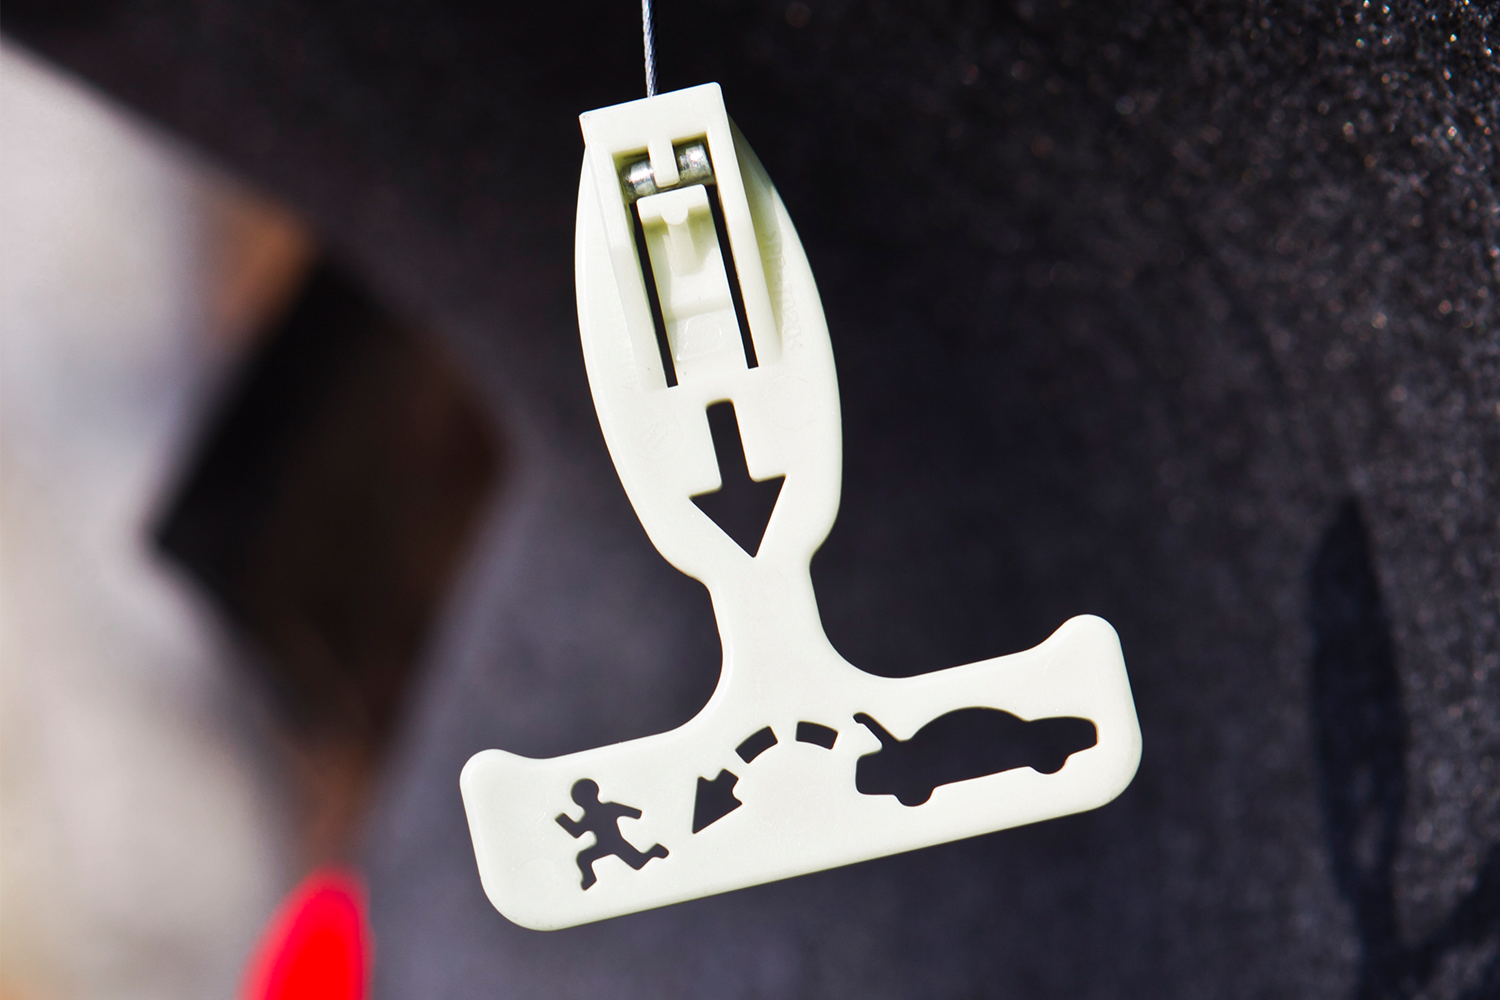 A glow-in-the-dark trunk release handle in the back of a car. After Janette Fennell was kidnapped, she advocated for the safety feature to be mandatory.